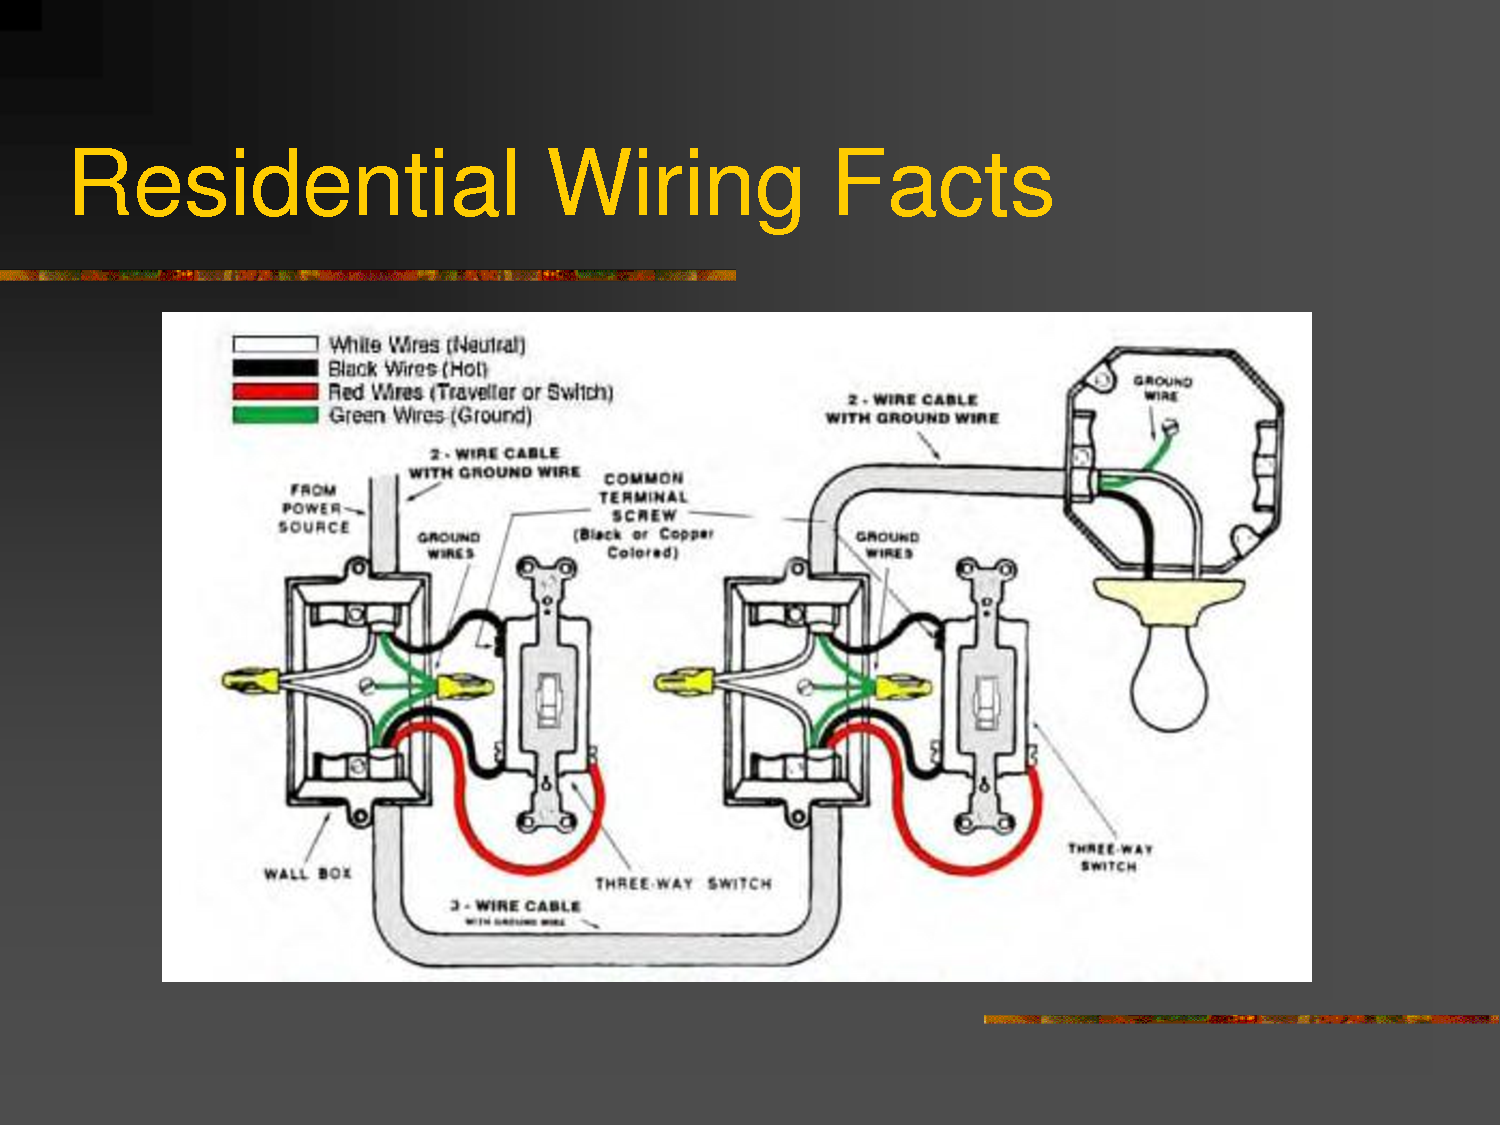 Electrical Wiring Diagram Of Wall - Auto Wiring Diagram Today •